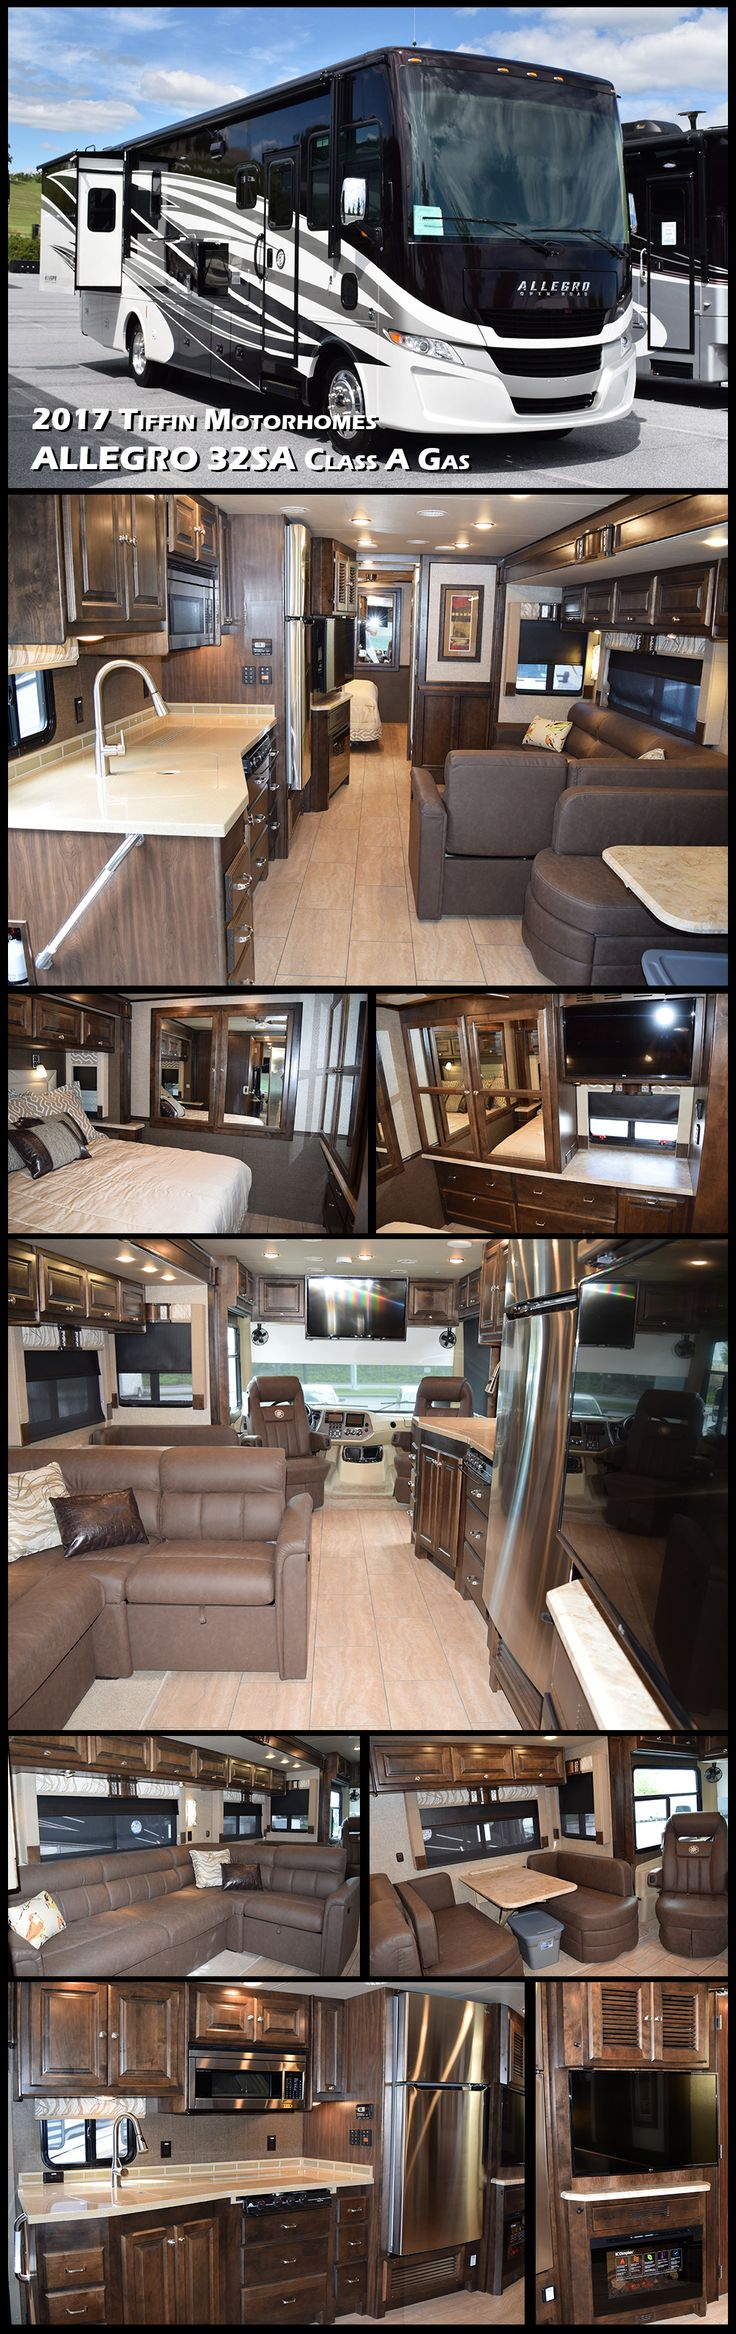 Enjoy each journey you take in this 2017 Tiffin Motorohmes ALLEGRO 32SA Class A Motorhome. You will find plenty of space with two large slides, a king size bed, and all the amenities you need to have the freedom to explore distant places in comfort!